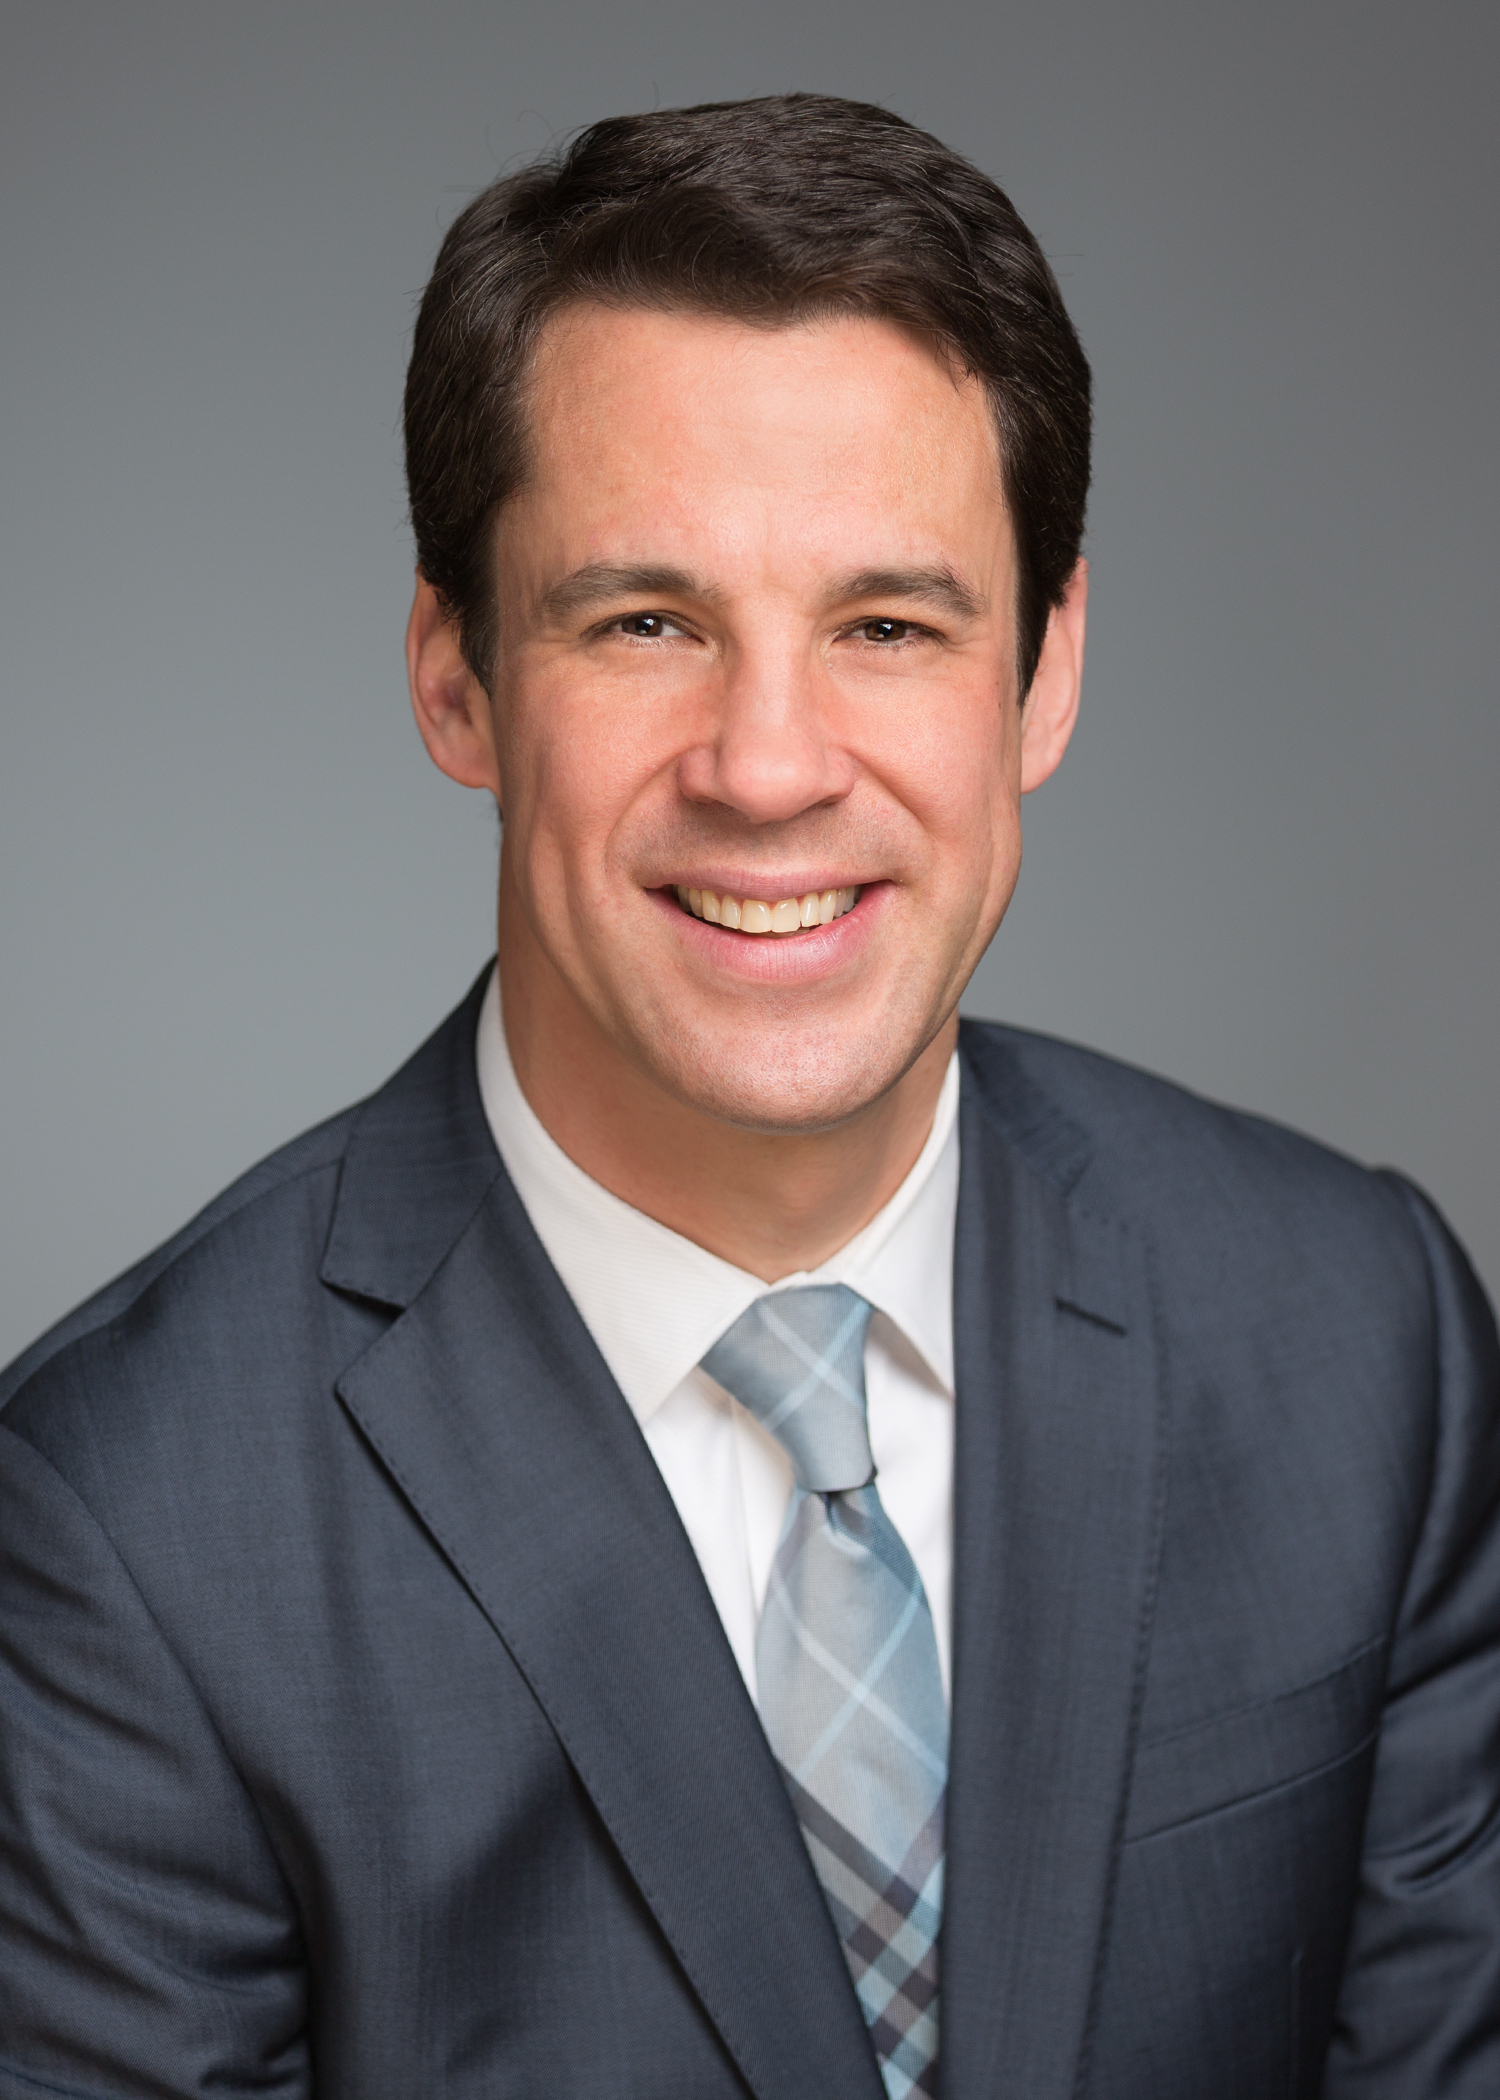 Graeme Queen, second vice president of Strategic Account Services at The Standard. (Photo: Business Wire)